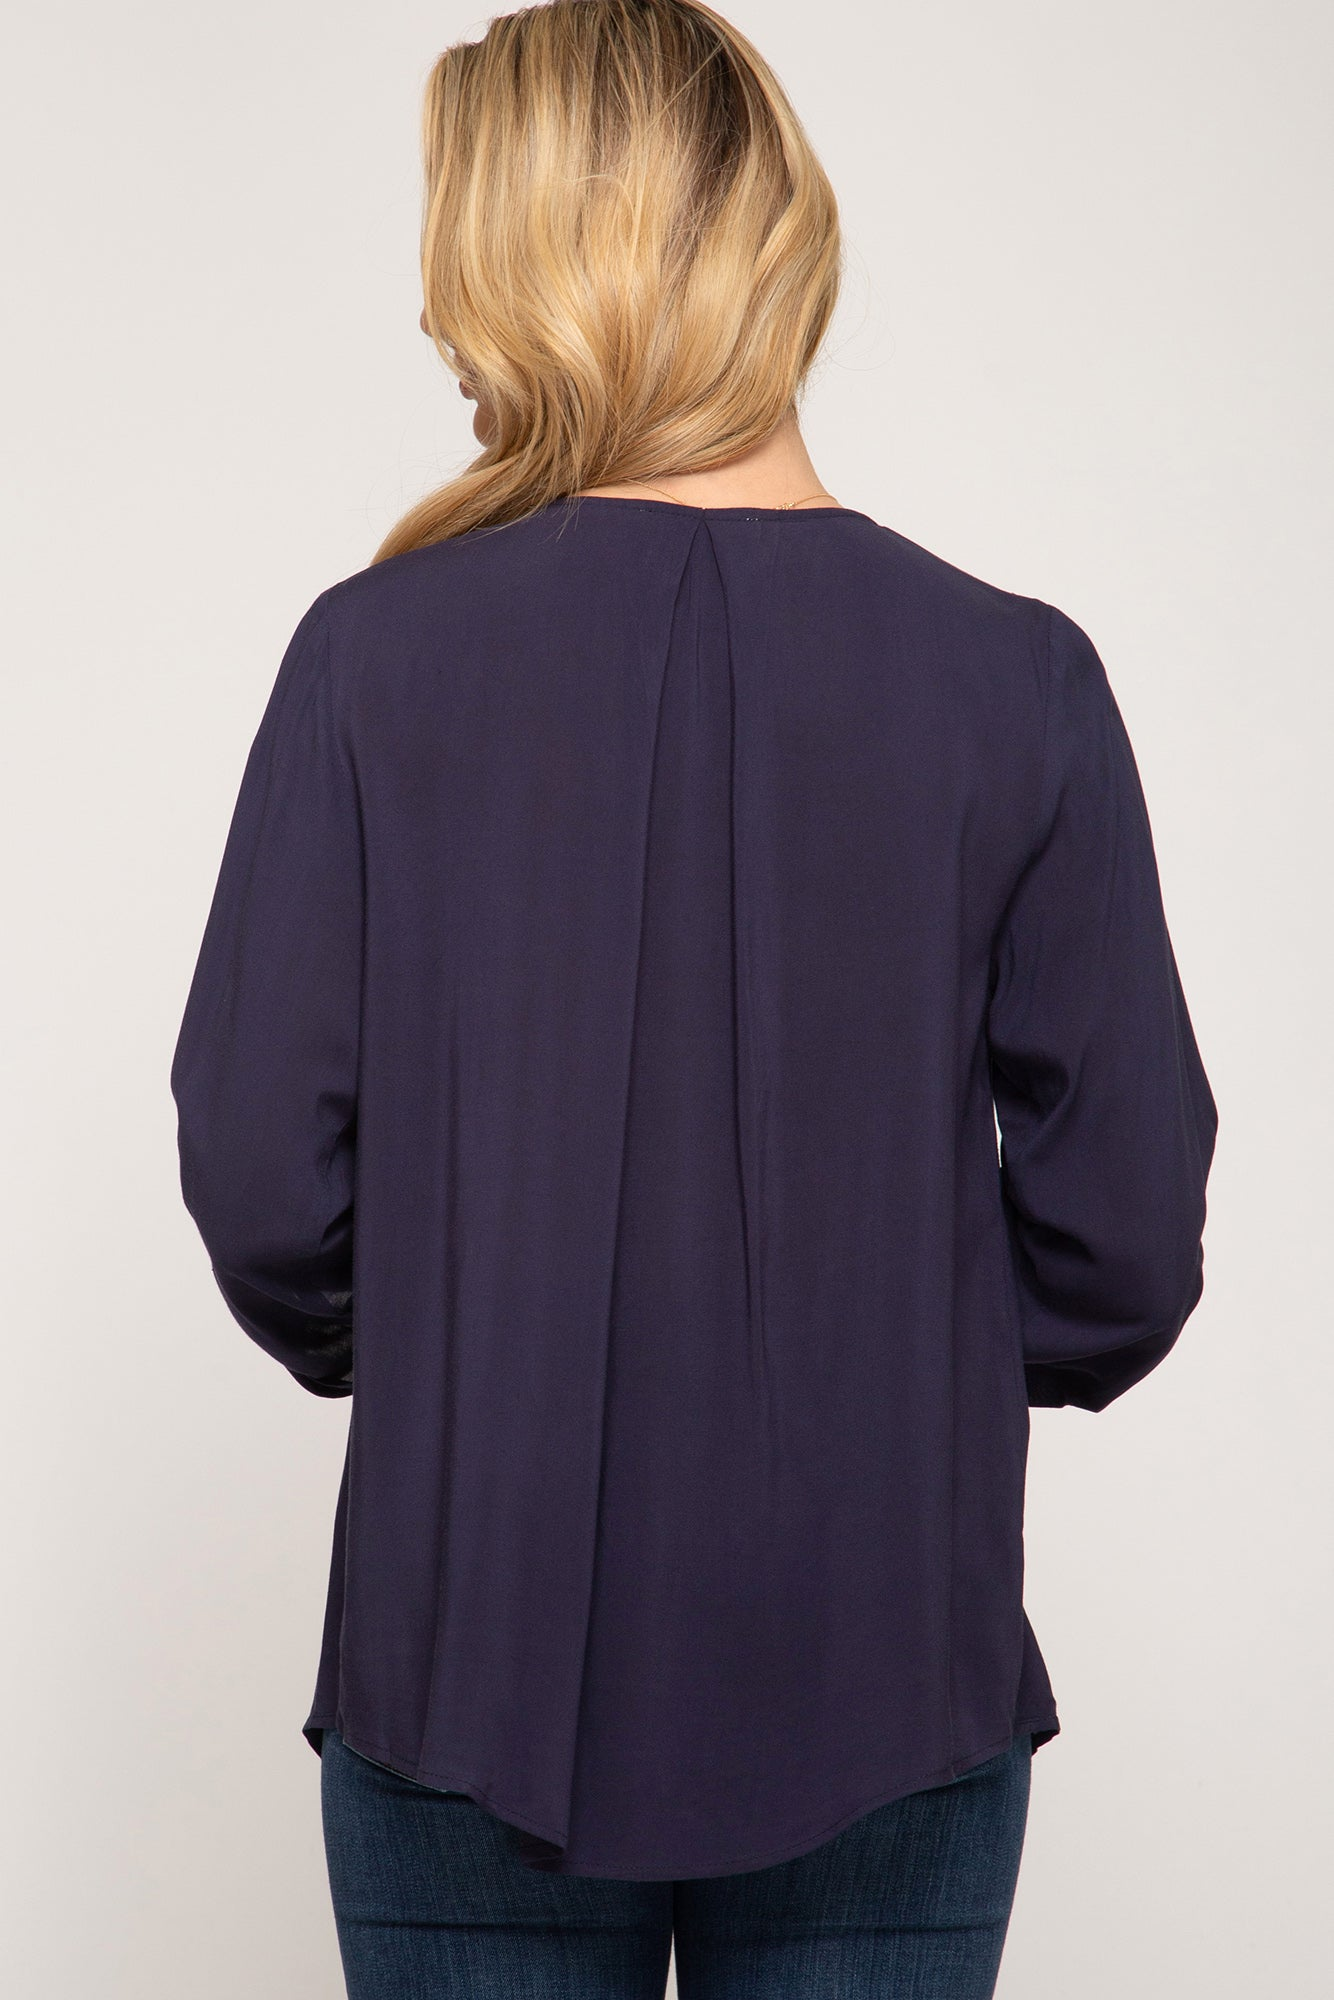 Roll-Up Sleeve Navy Lightweight Top